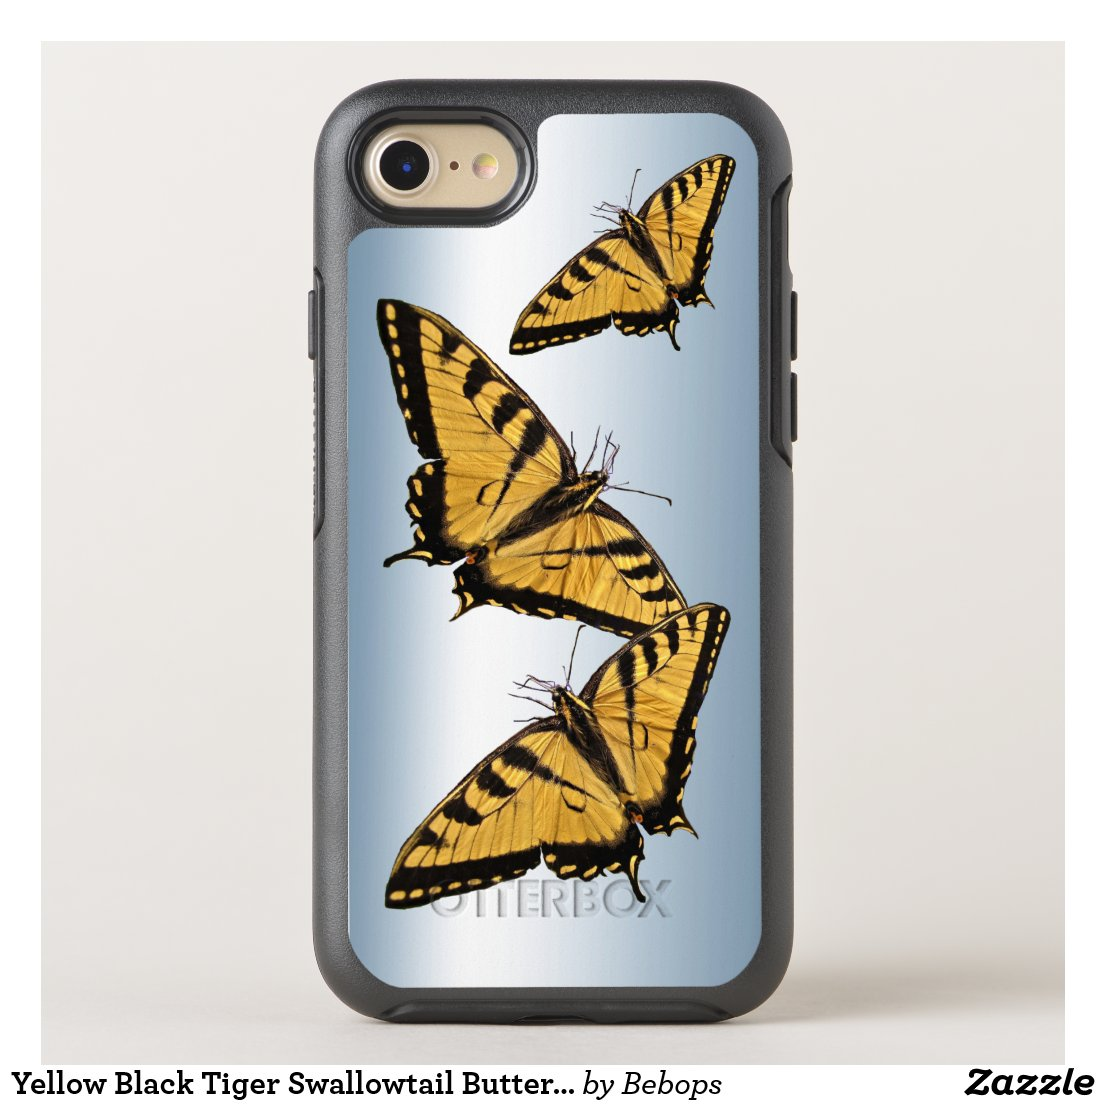 Yellow Black Tiger Swallowtail Butterfly Animal OtterBox Symmetry iPhone 7 Case